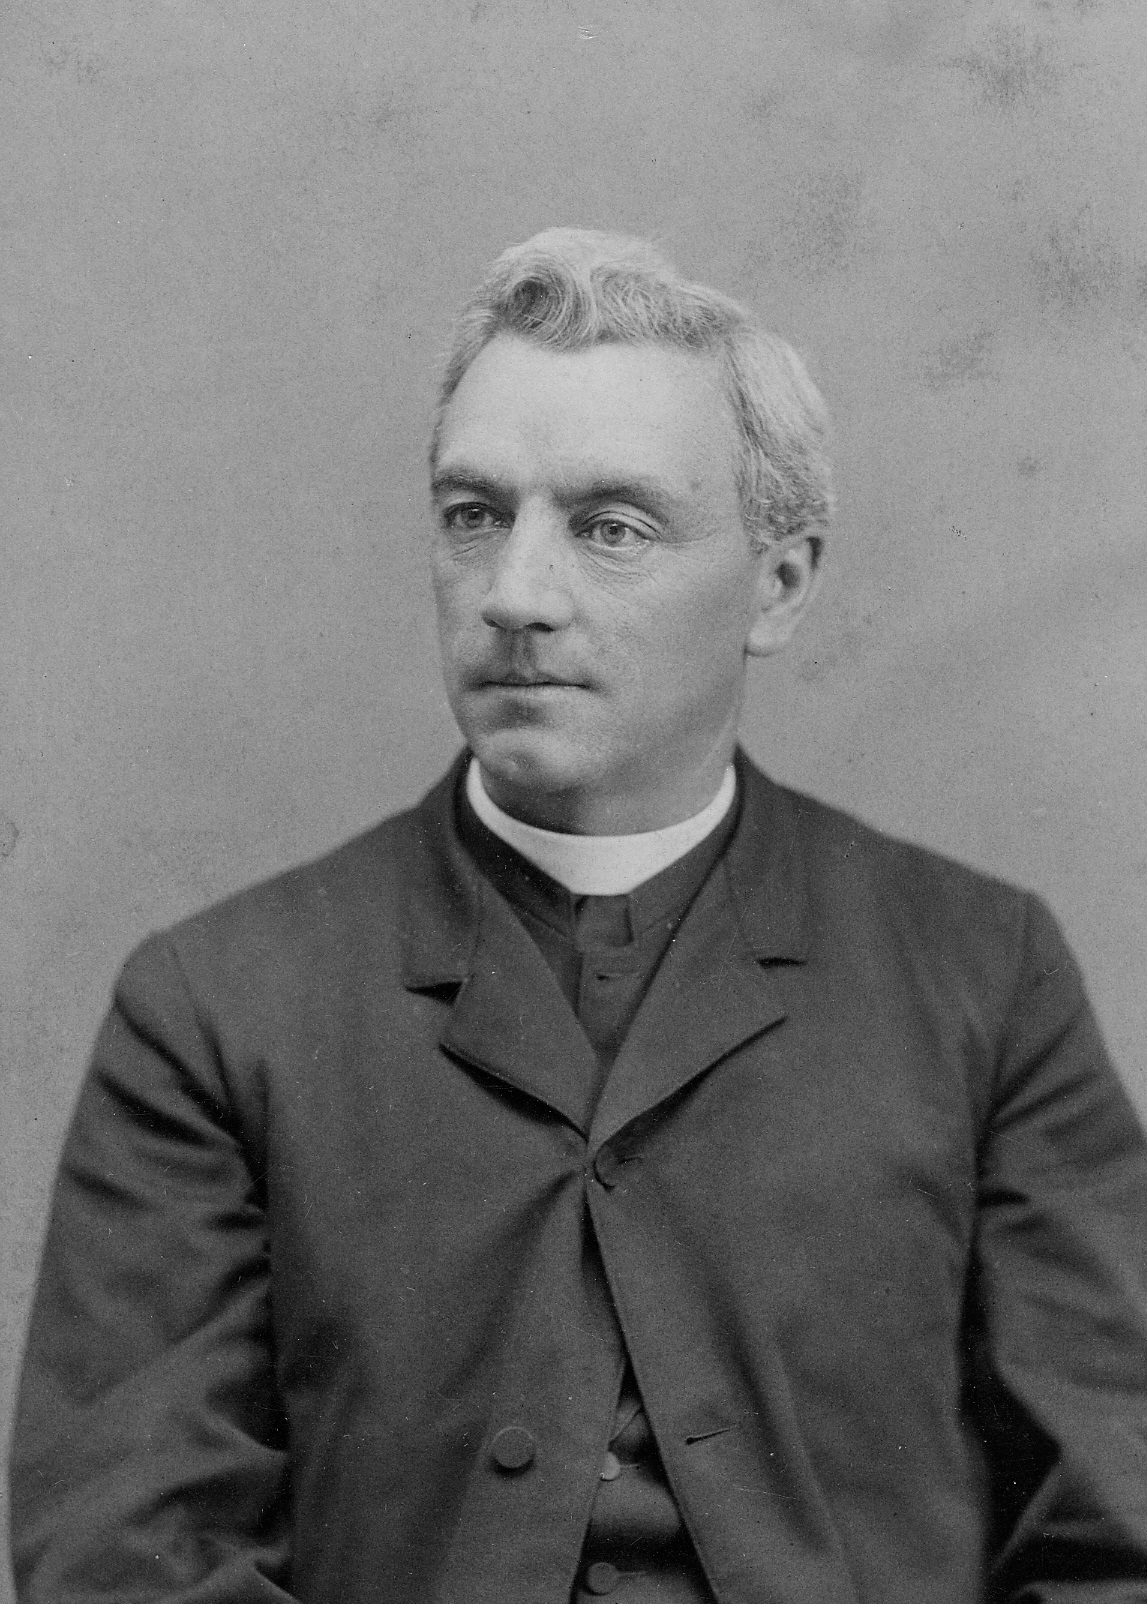 Patrick F. Healy S.J. pictured in 1882